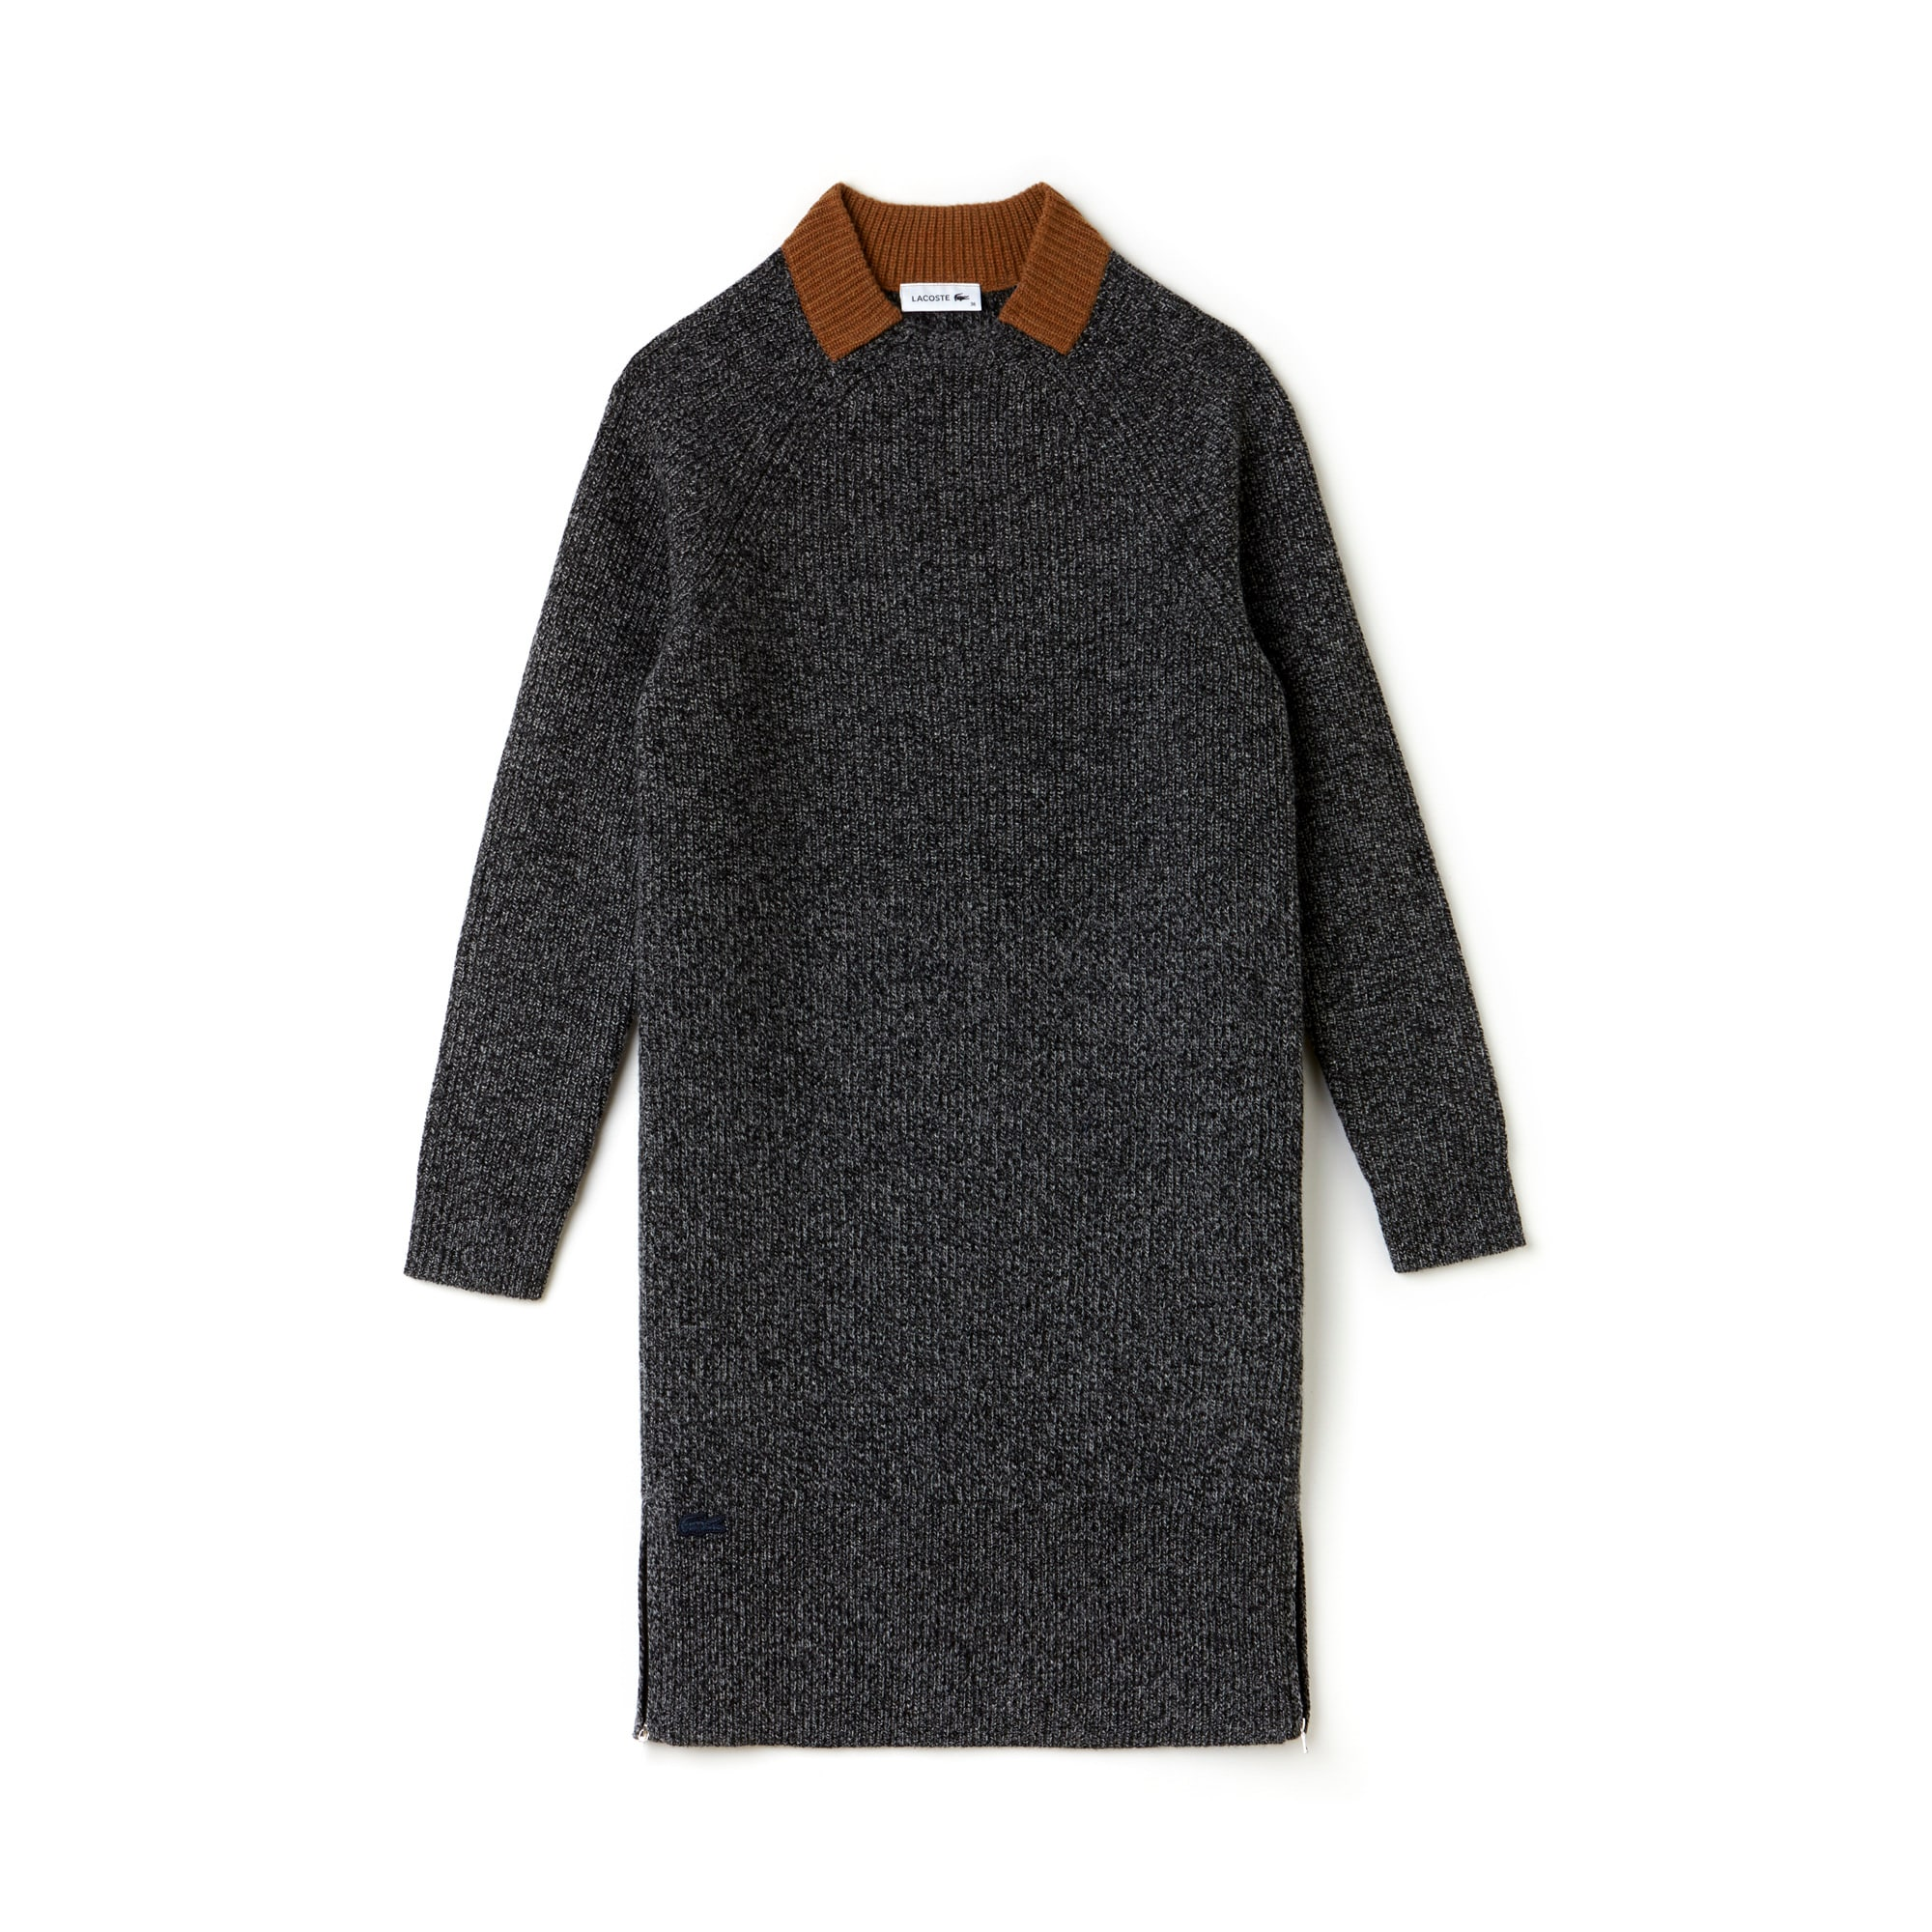 Women's Ribbed Wool Zippered Sweatshirt Dress